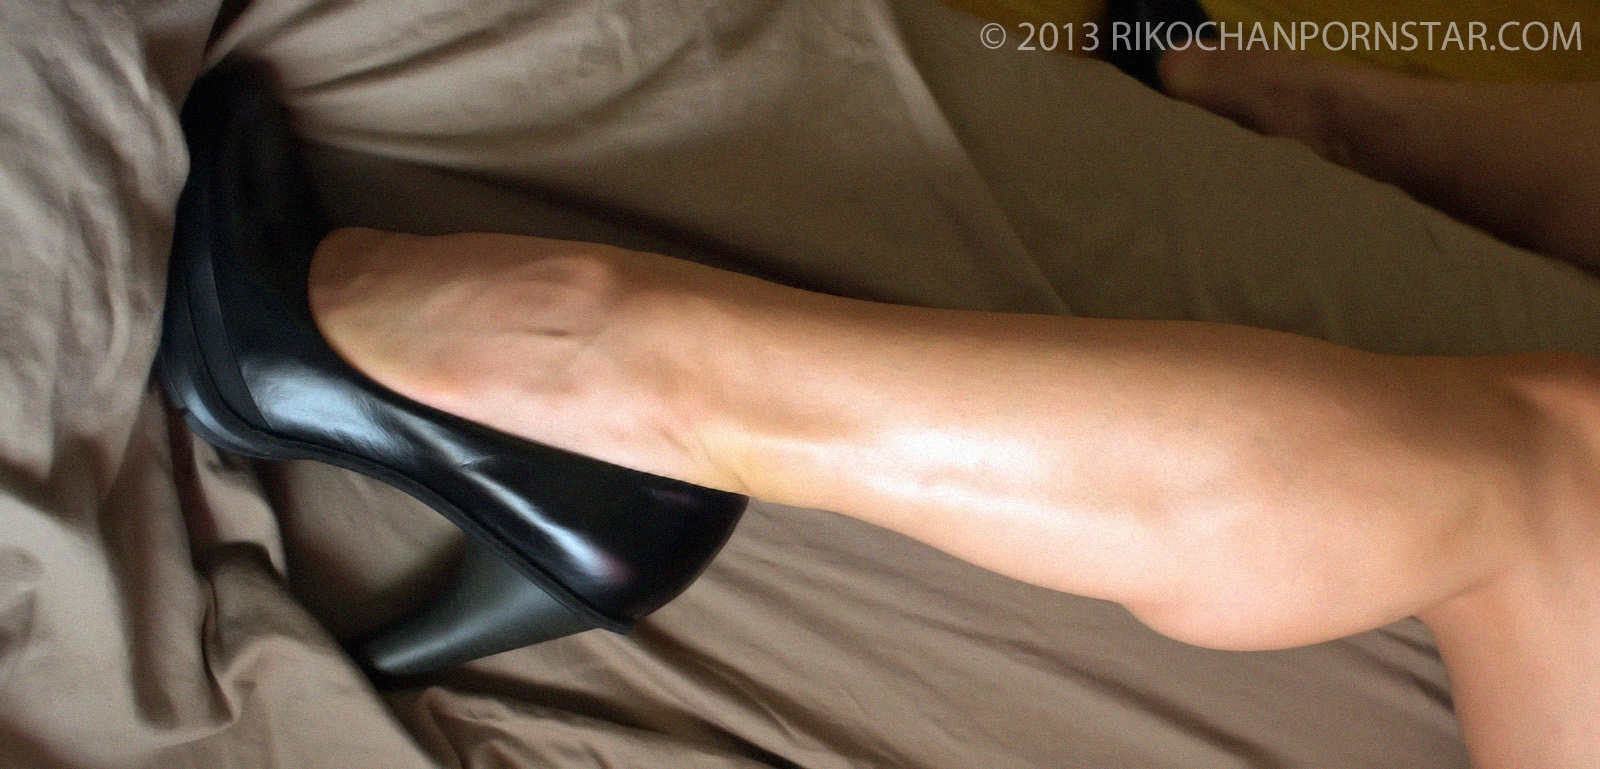 If you've got a foot fetish, you'll love Rikochan's strong calves in sexy heels